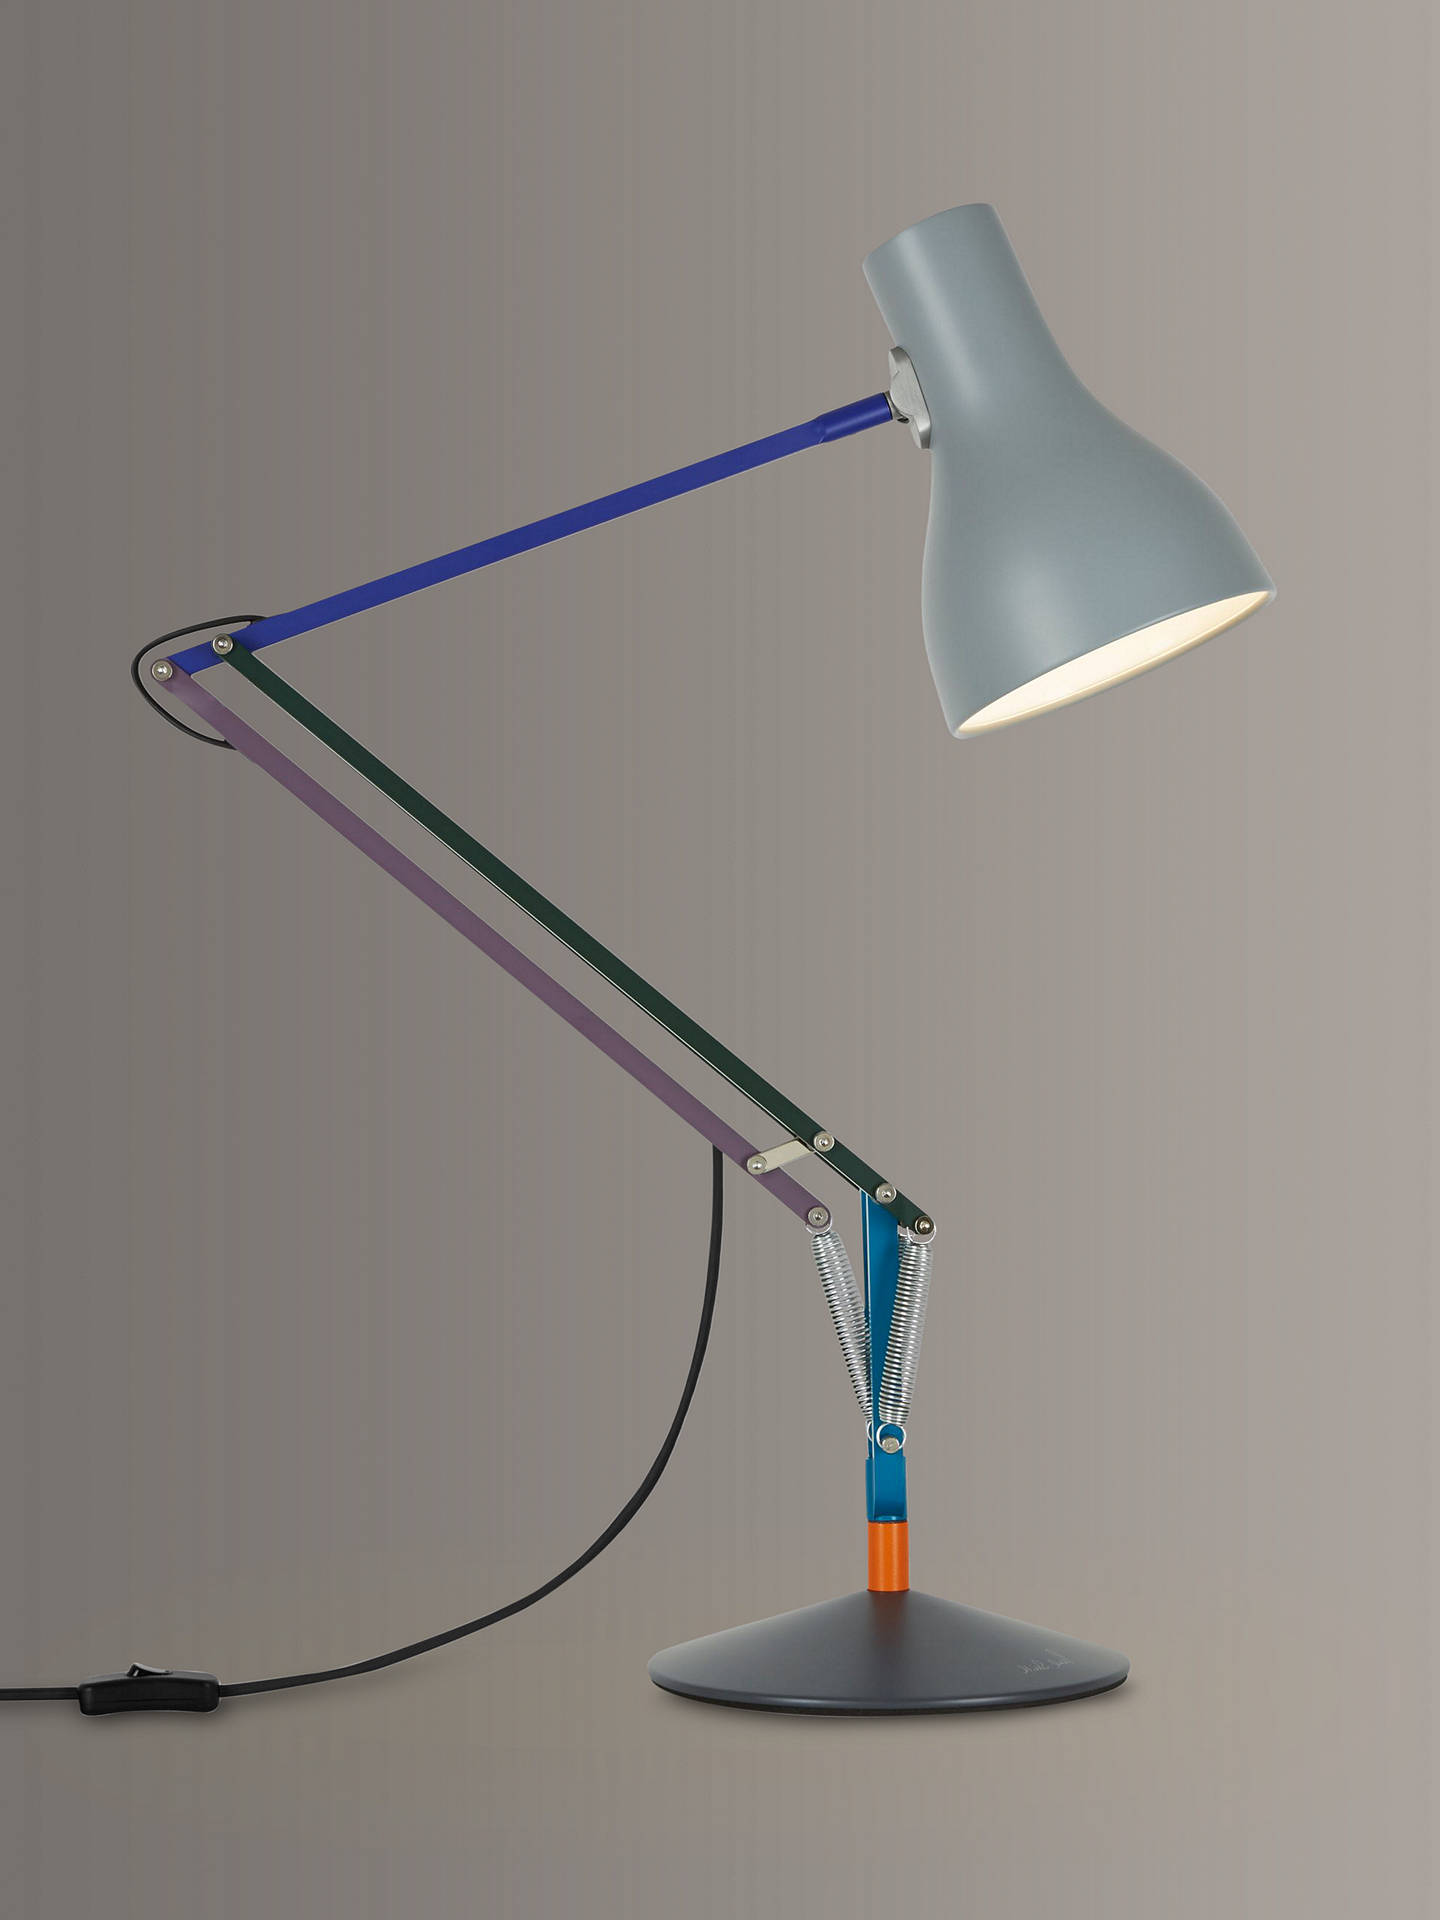 BuyAnglepoise + Paul Smith Type 75 Desk Lamp, Edition 2 Online at johnlewis.com